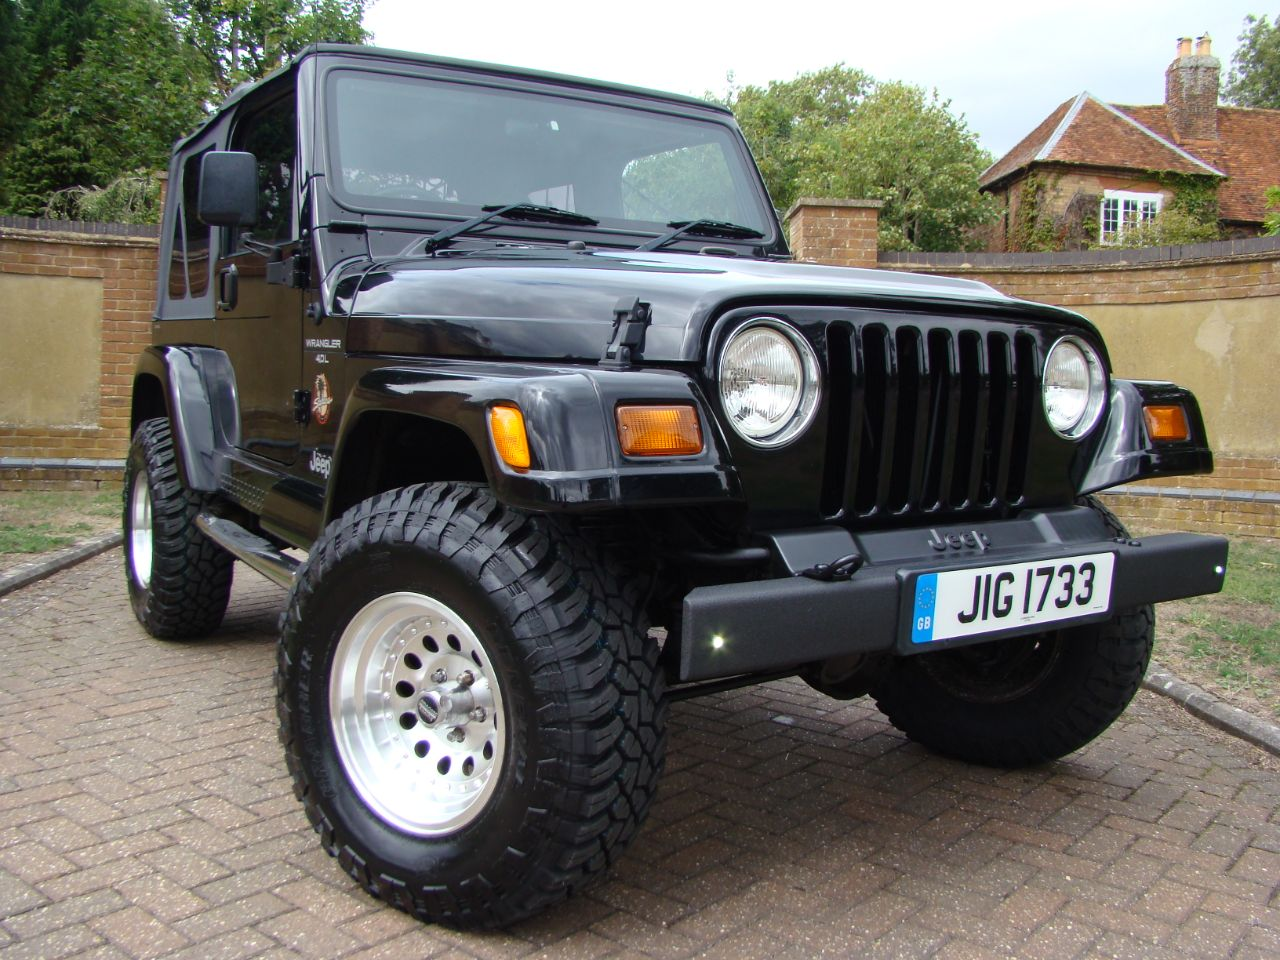 Jeep Wrangler 4.0 Sahara Auto Soft Top Estate Petrol Black at Claridges Cars Leighton Buzzard